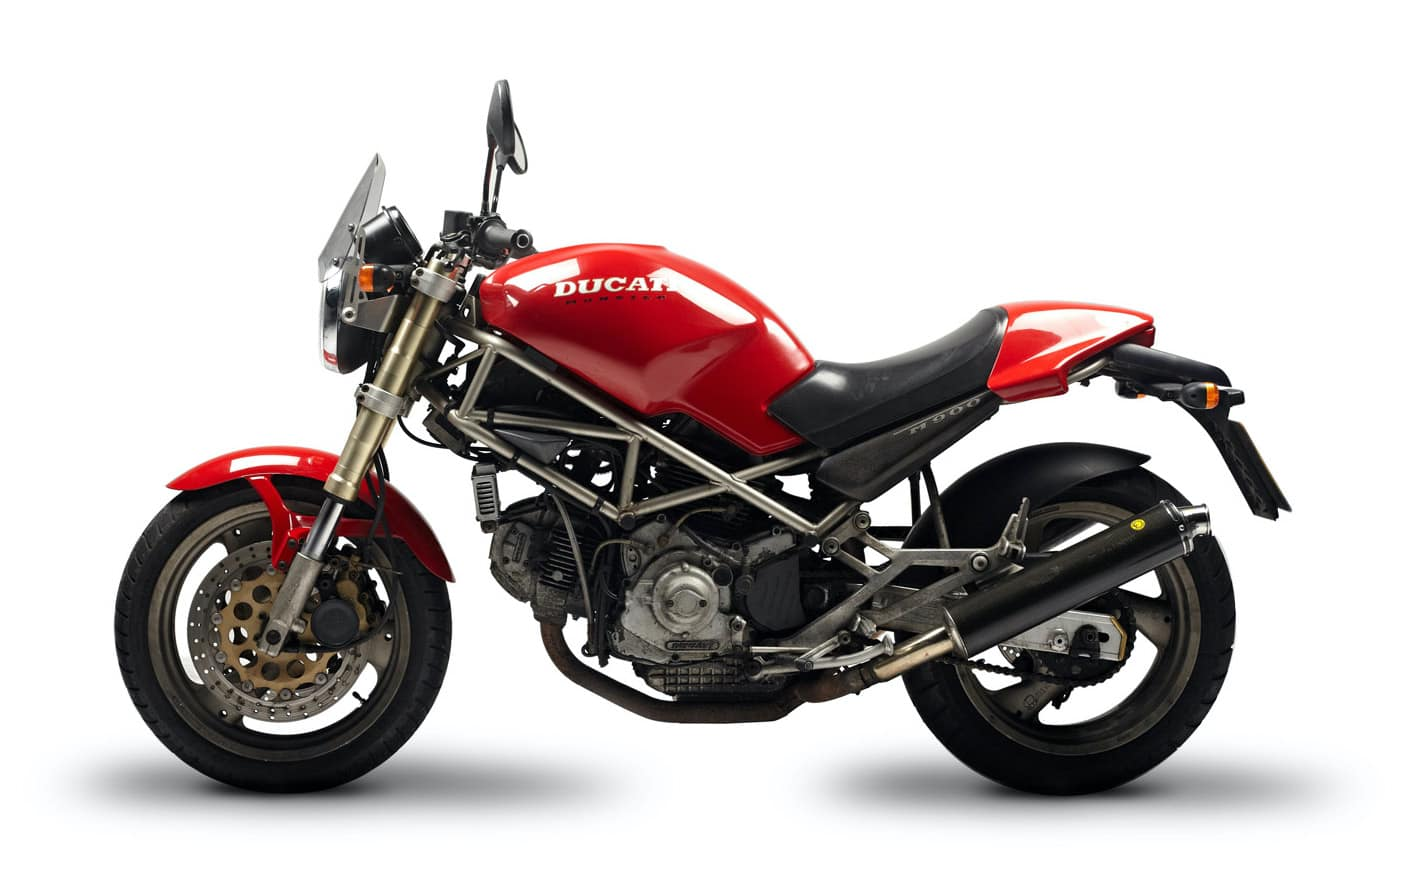 The original Ducati Monster - a red Ducati Monster m900